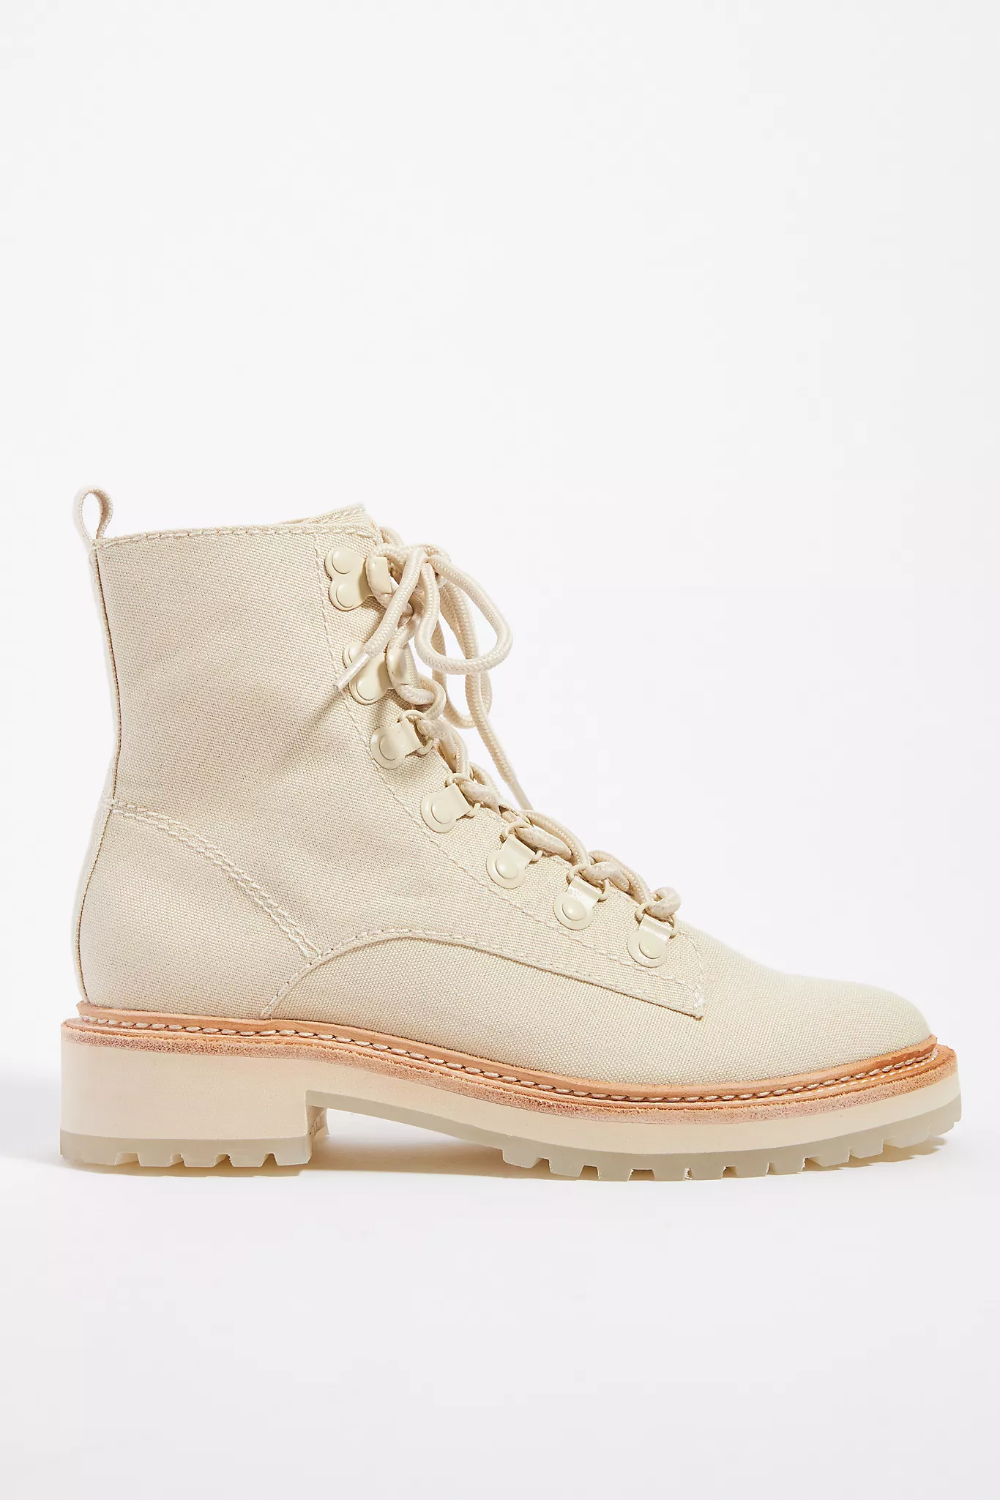 Dolce Vita Whitney Lace-Up Boots